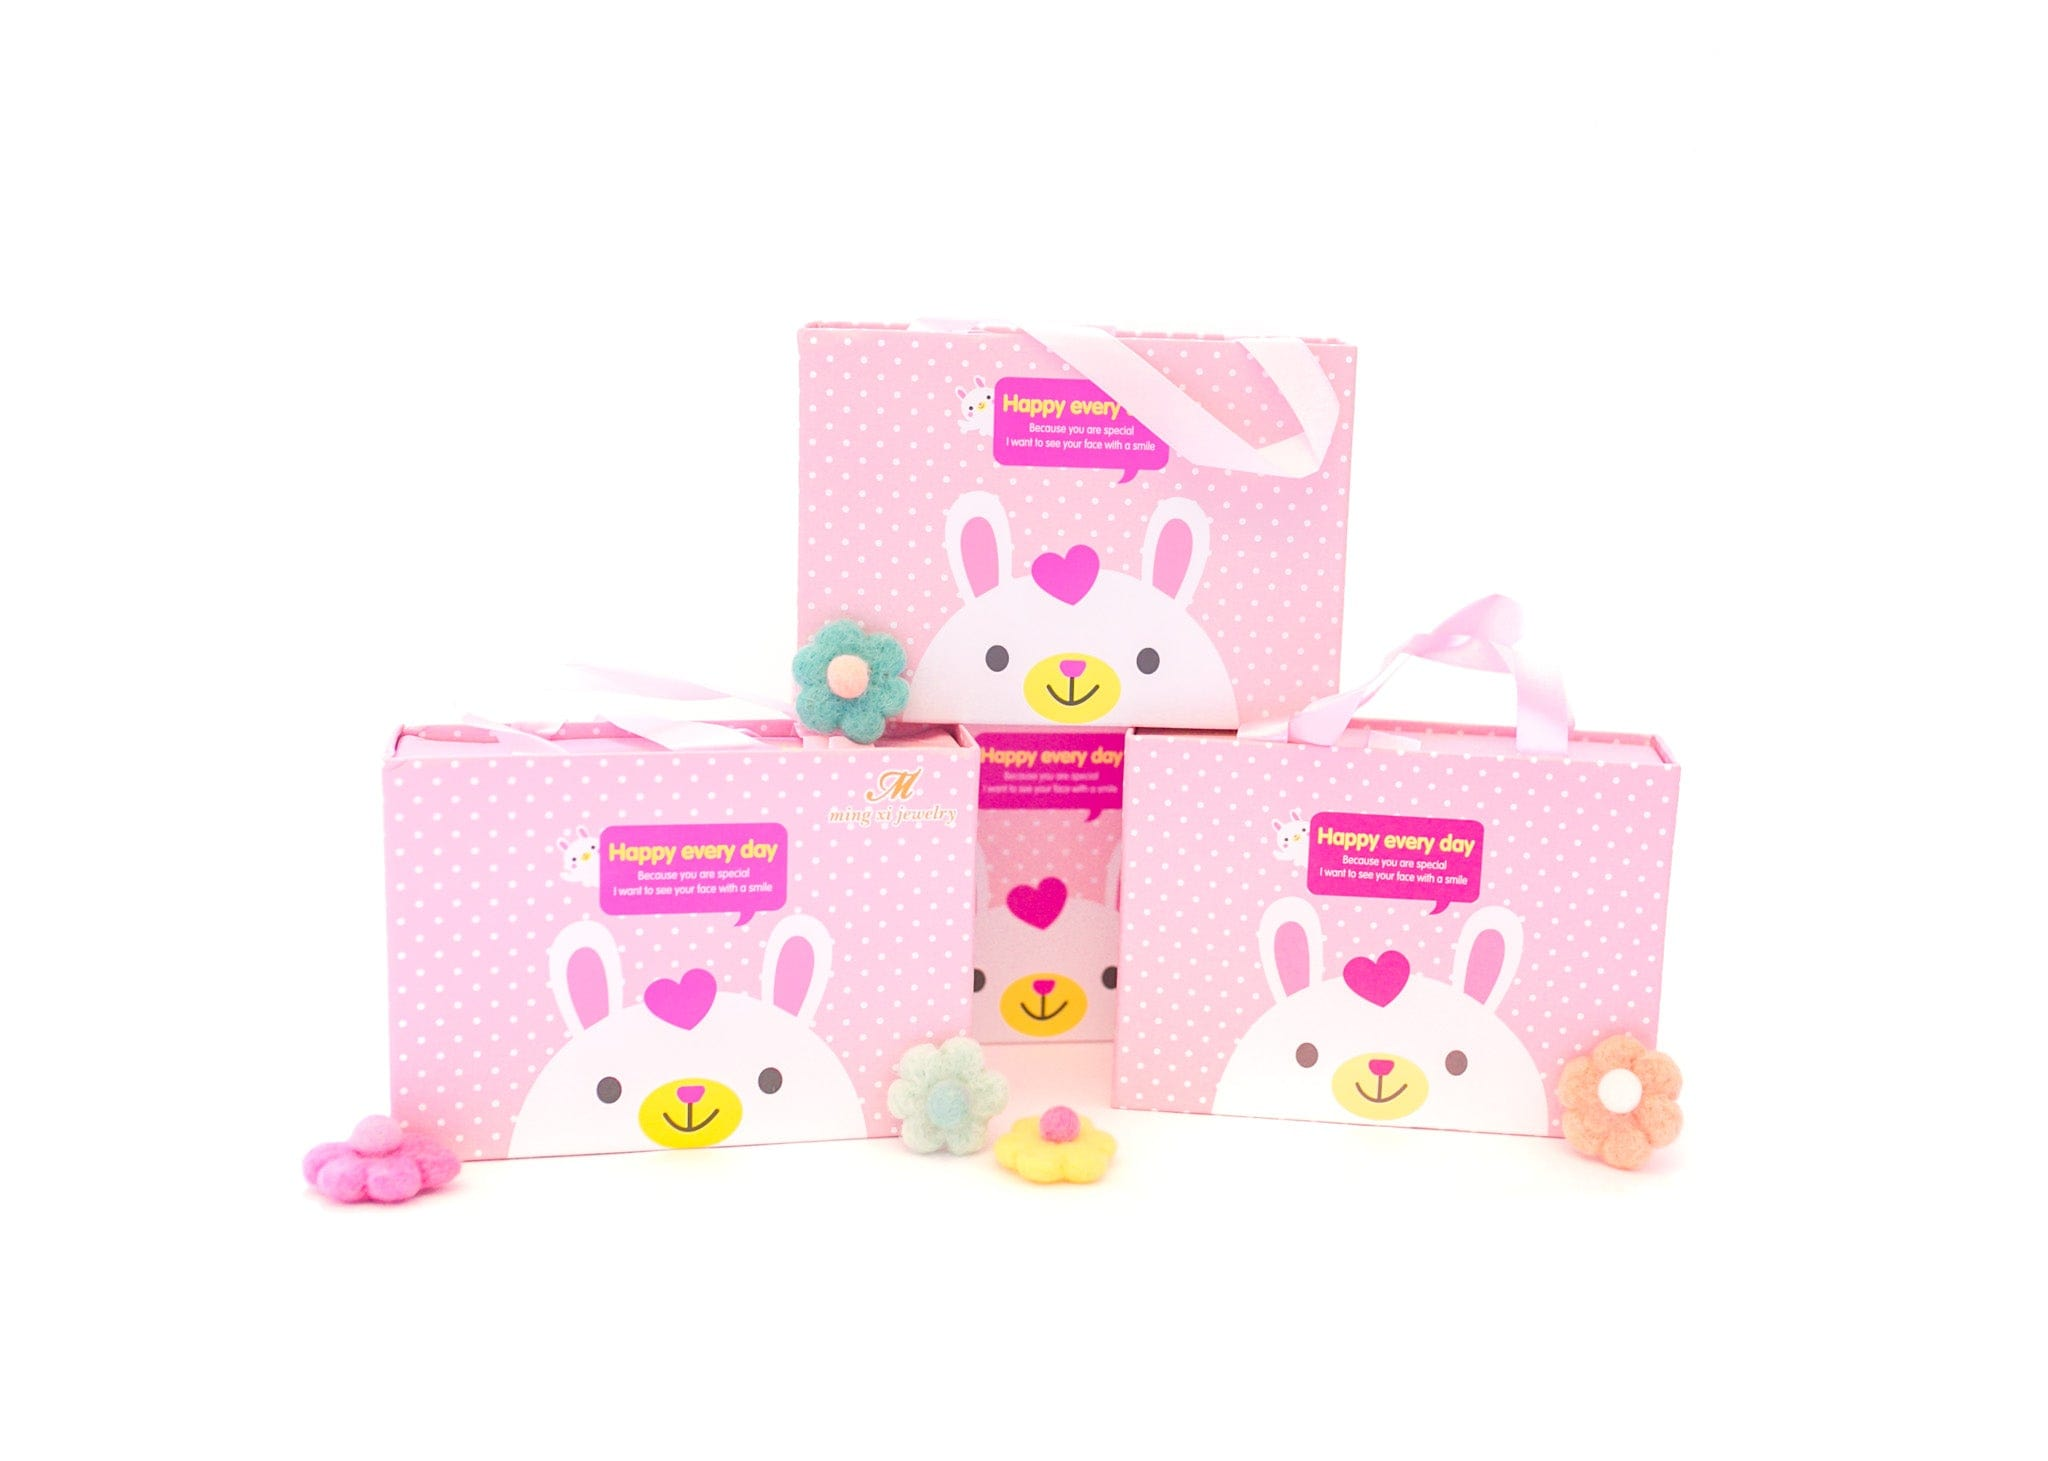 Pink Hair Accessories Gift Box - 18Pcs - Gift Set